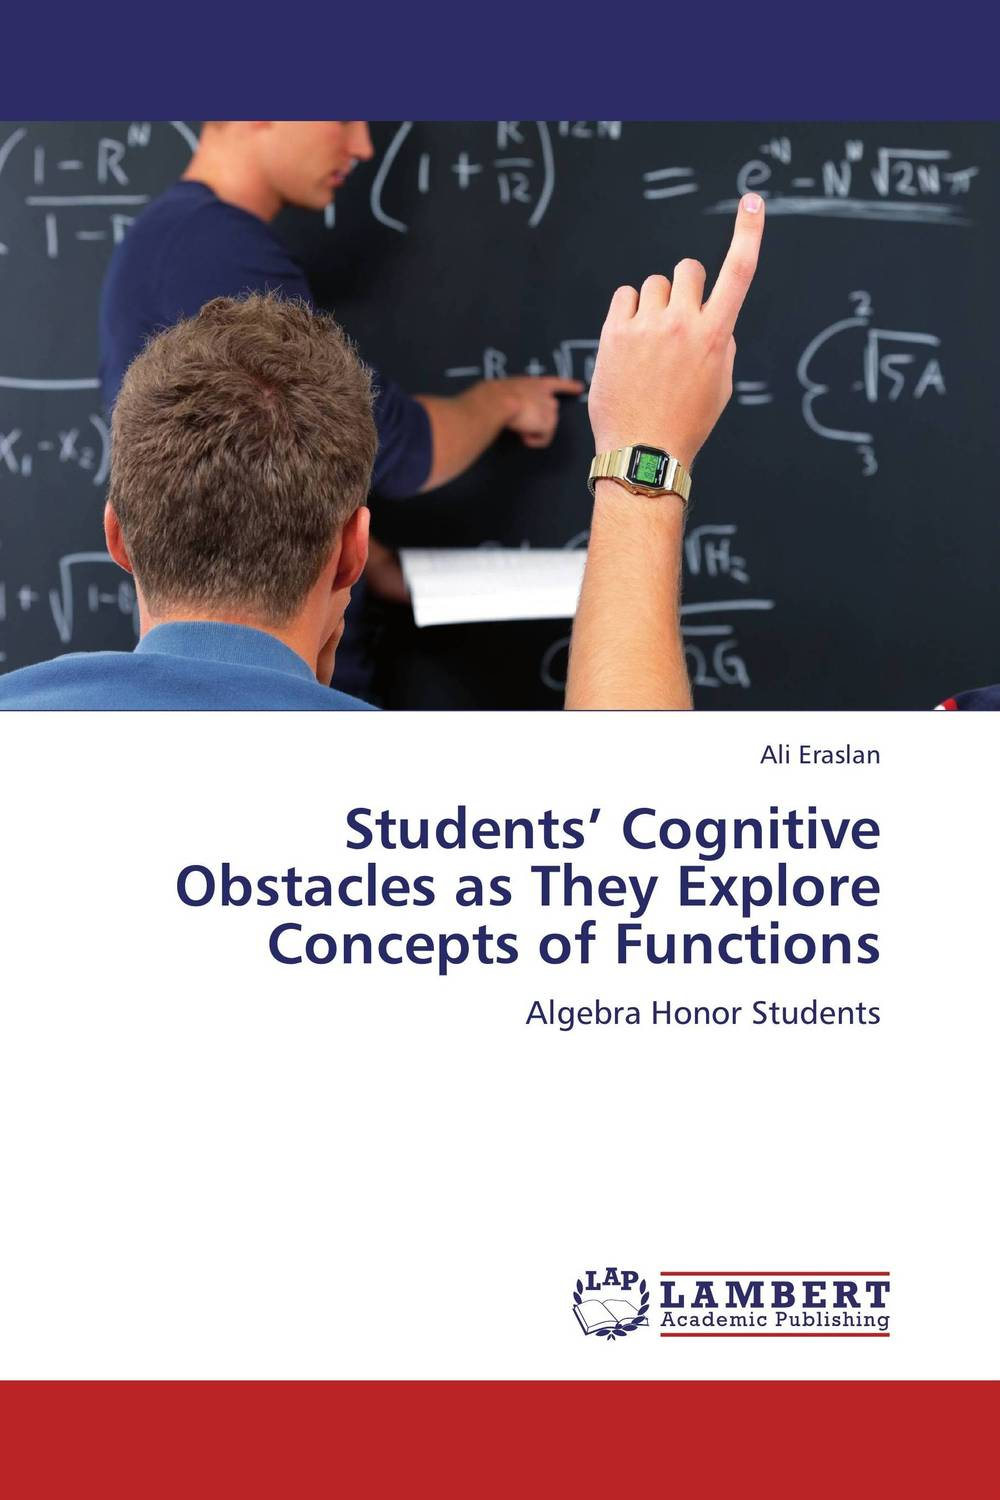 Students' Cognitive Obstacles as They Explore Concepts of Functions seeing things as they are